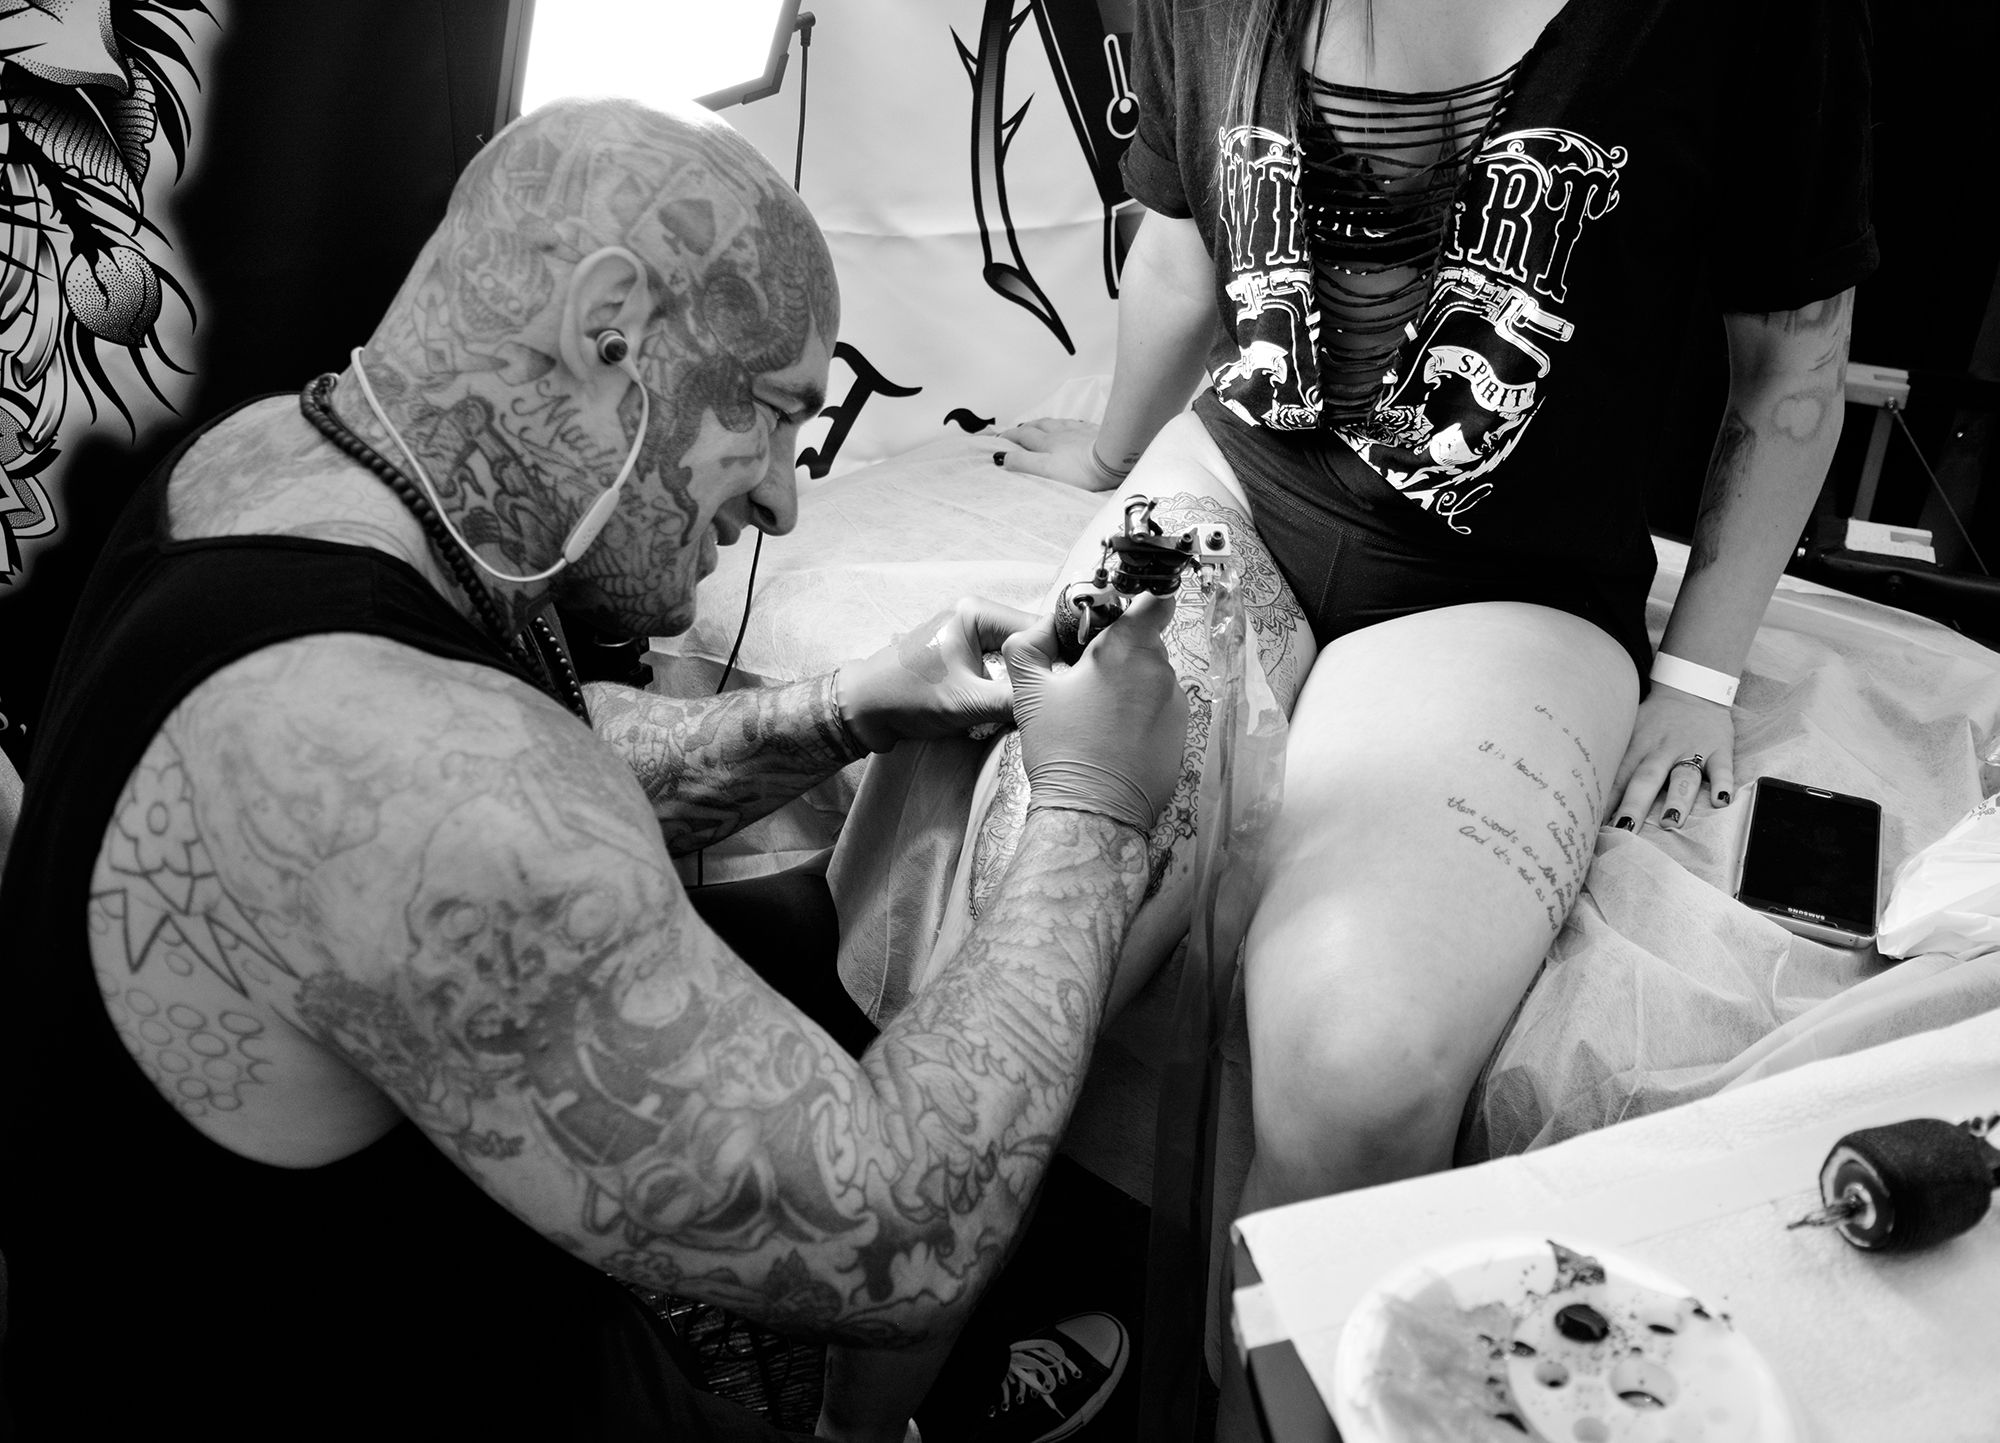 tattooer Joseph Haefs at the van isle tattoo expo, convention